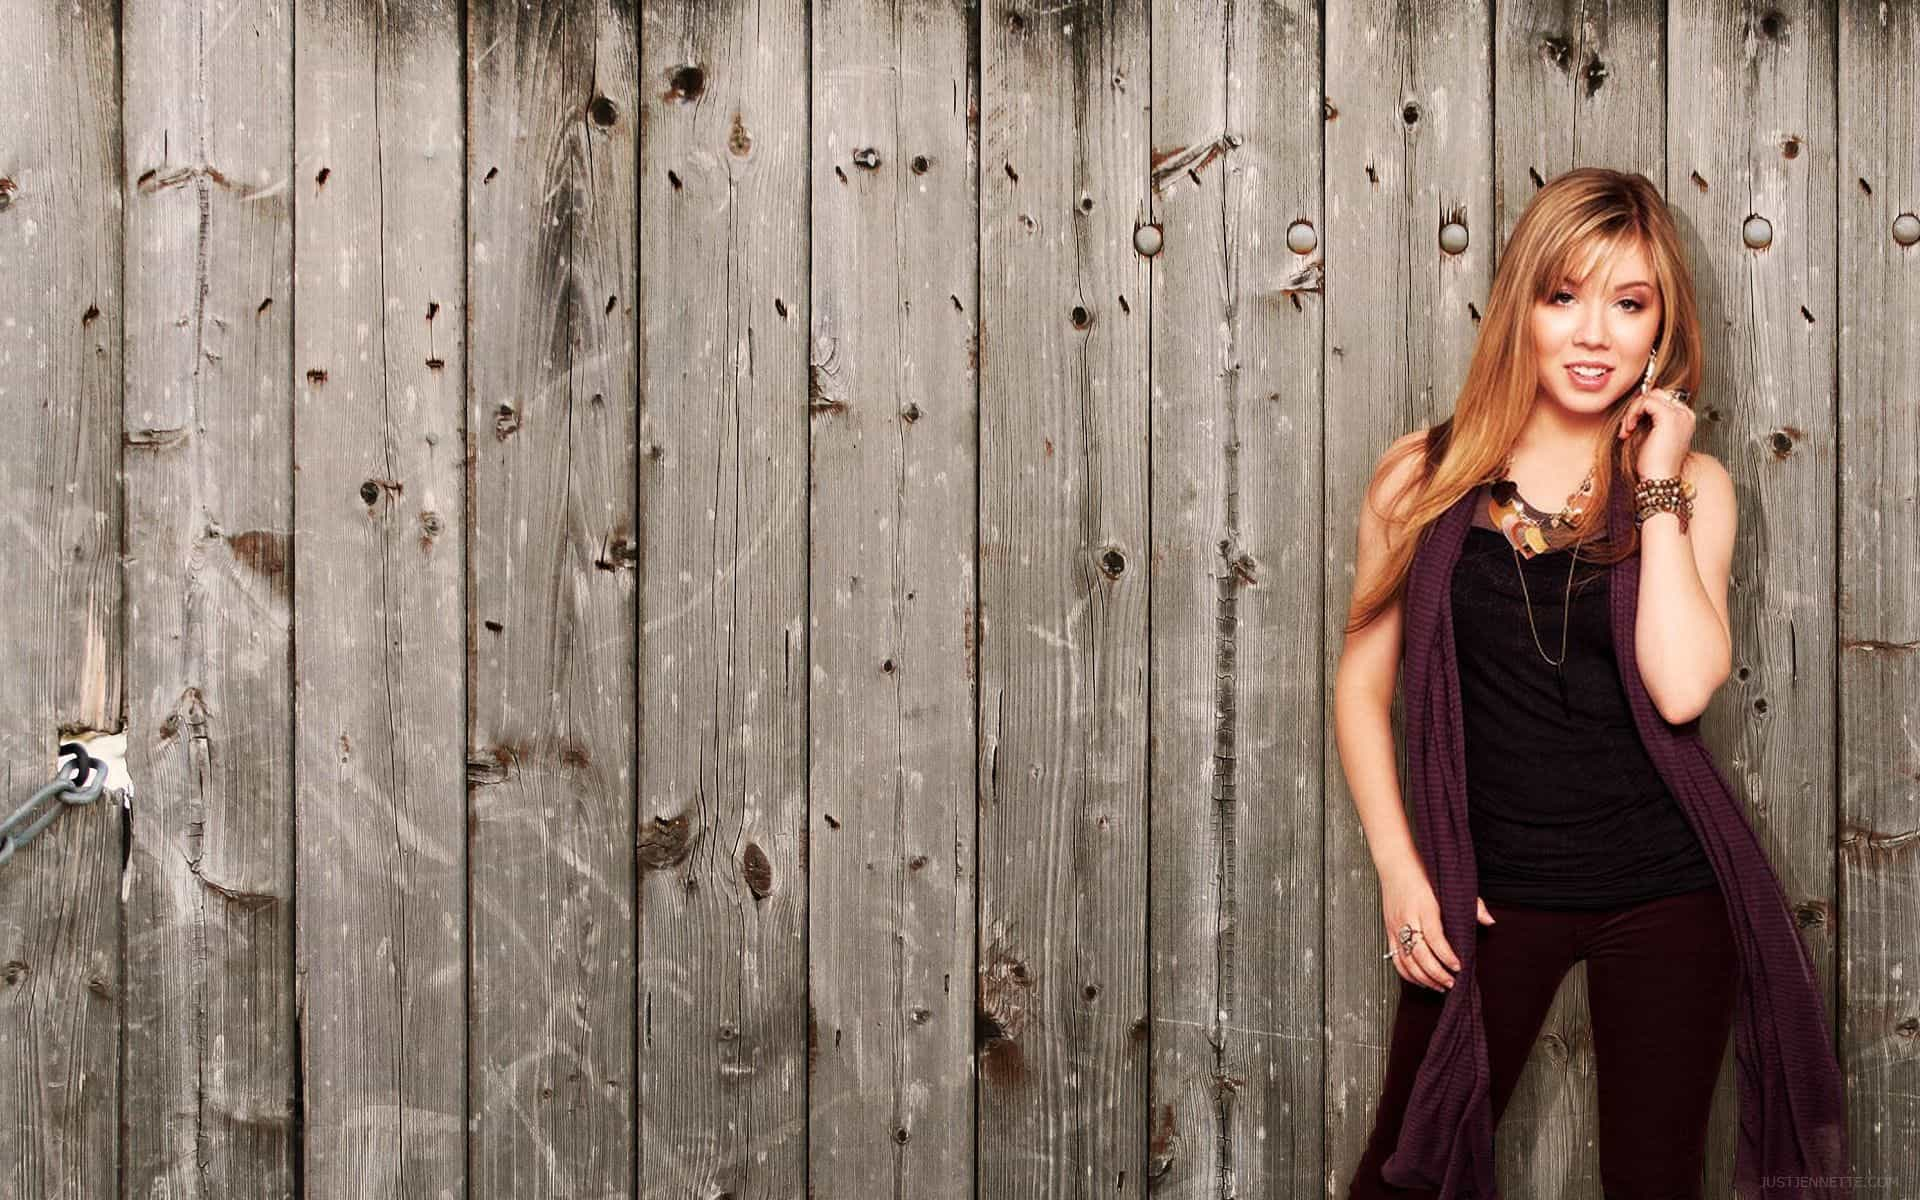 1920x1200 - Jennette McCurdy Wallpapers 27